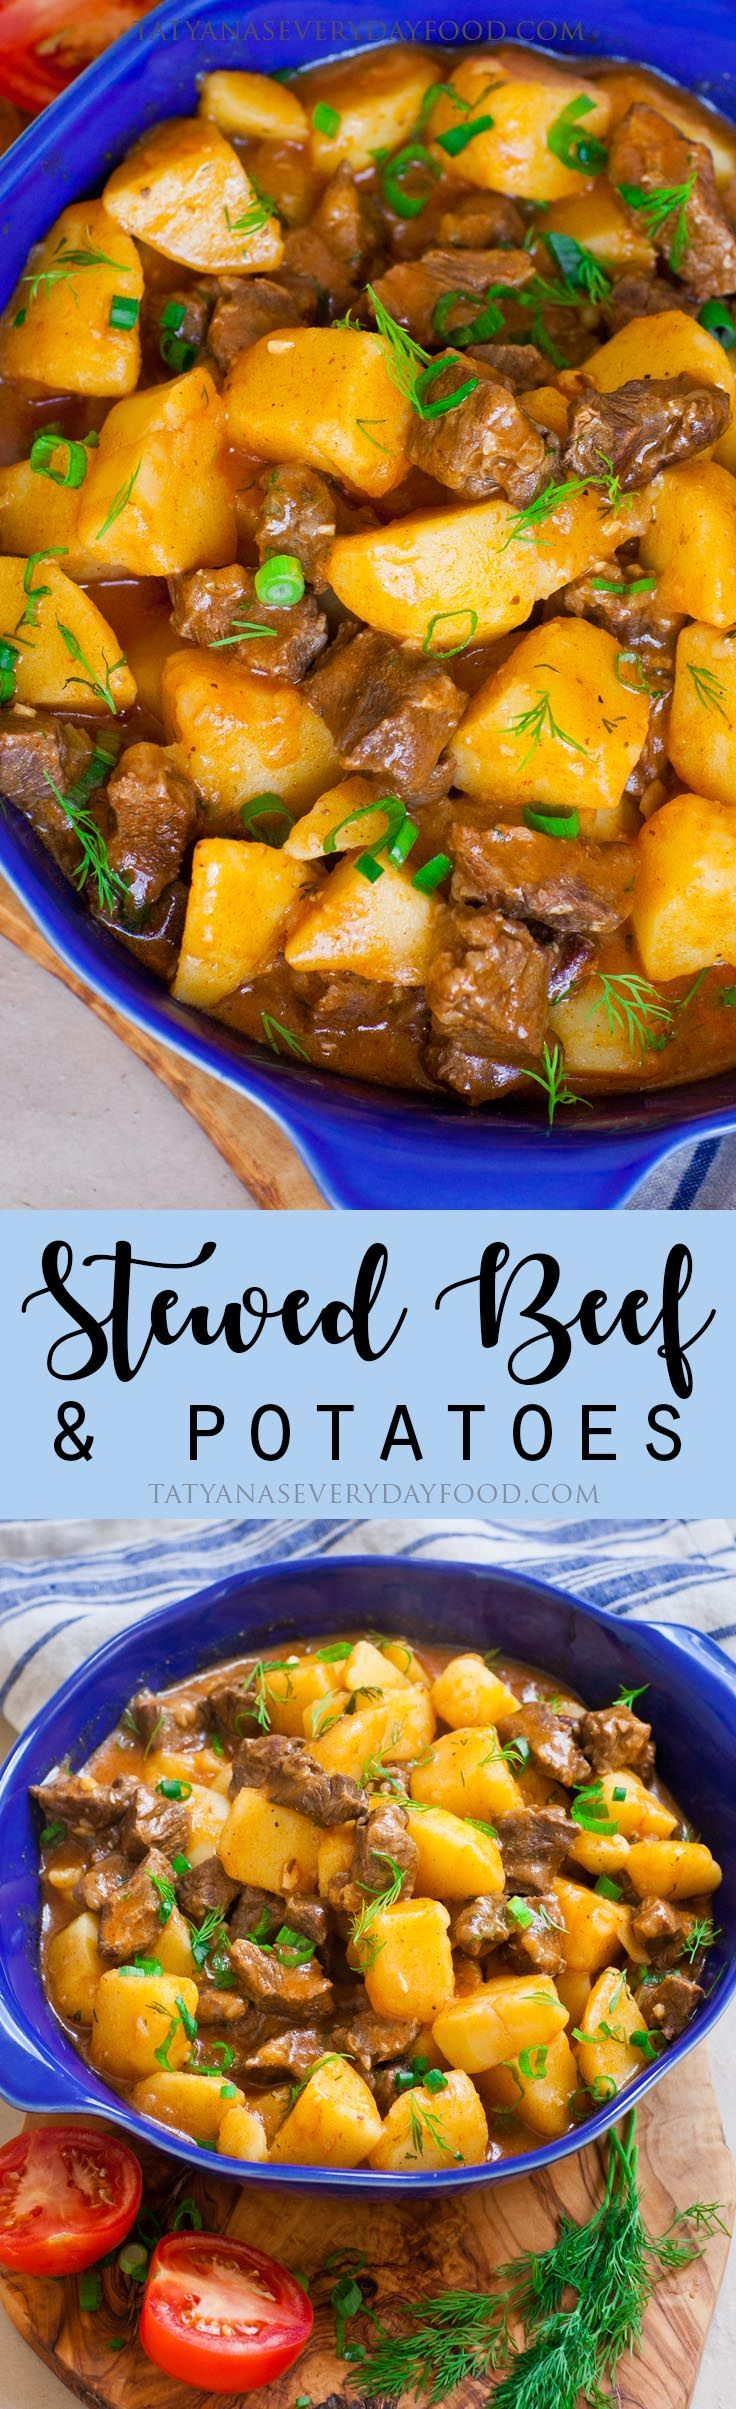 Жаркое, aka 'Stewed Beef and Potatoes' – a delicious Eastern European comfort food that I ate so often growing up! Every time I make this in my kitchen, it brings back warm and delicious memories of my parents making this at home. This stewed beef recipe is prepared with the most delicious, most aromatic tomato […]